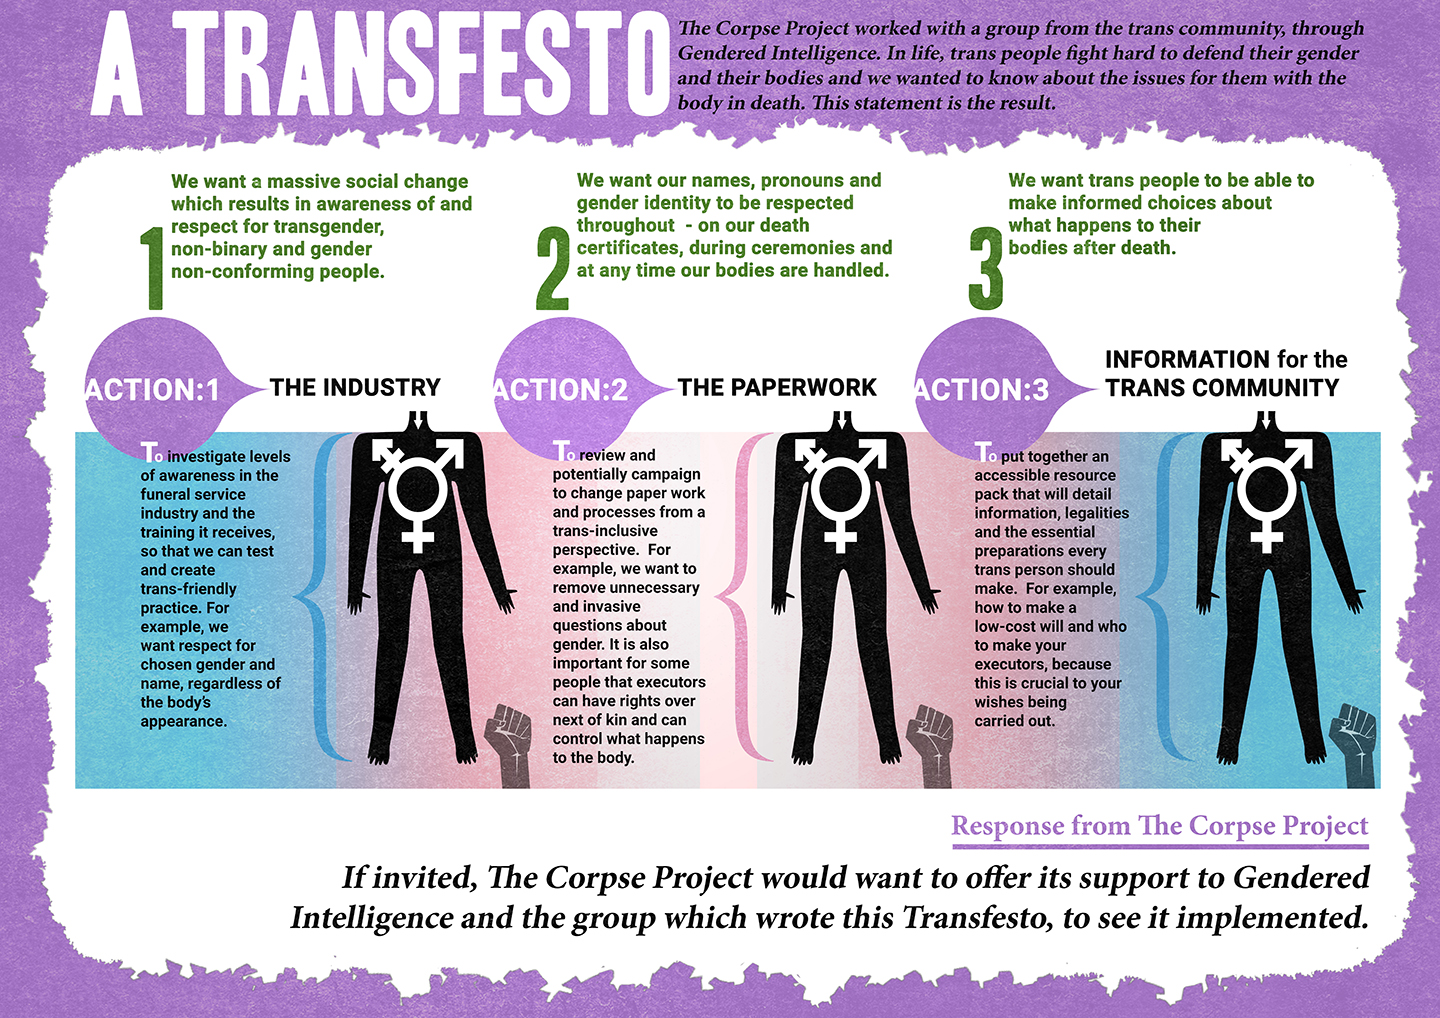 Illustration of three androgynous figures bearing trans symbol on chest surrounded by text (copied below)